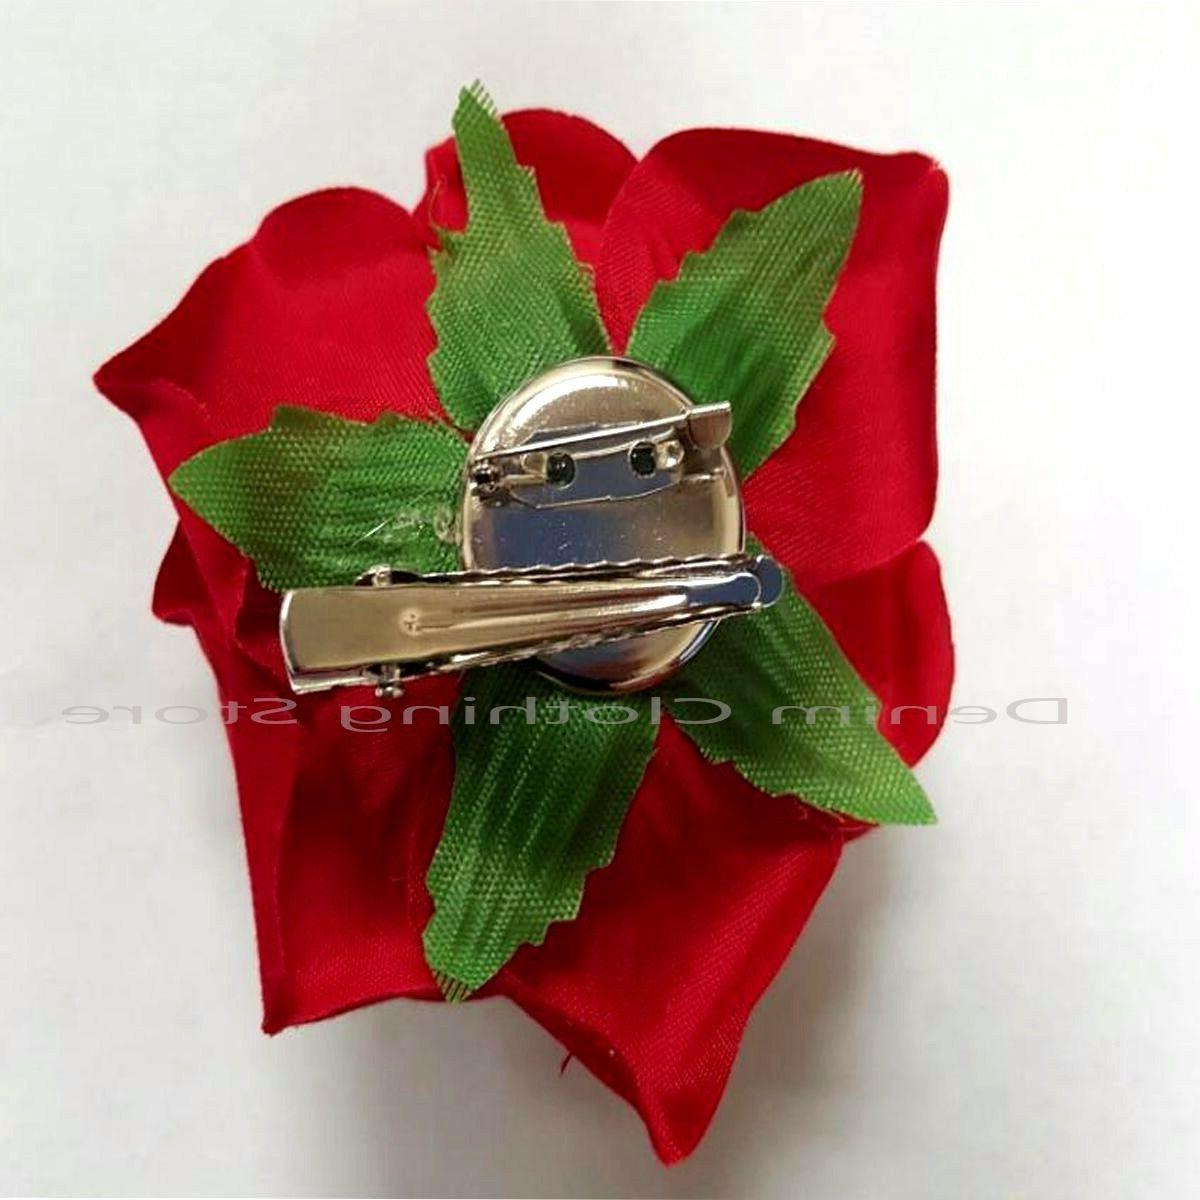 2pc Silk Red Rose Hair Clips Hairpin Lot